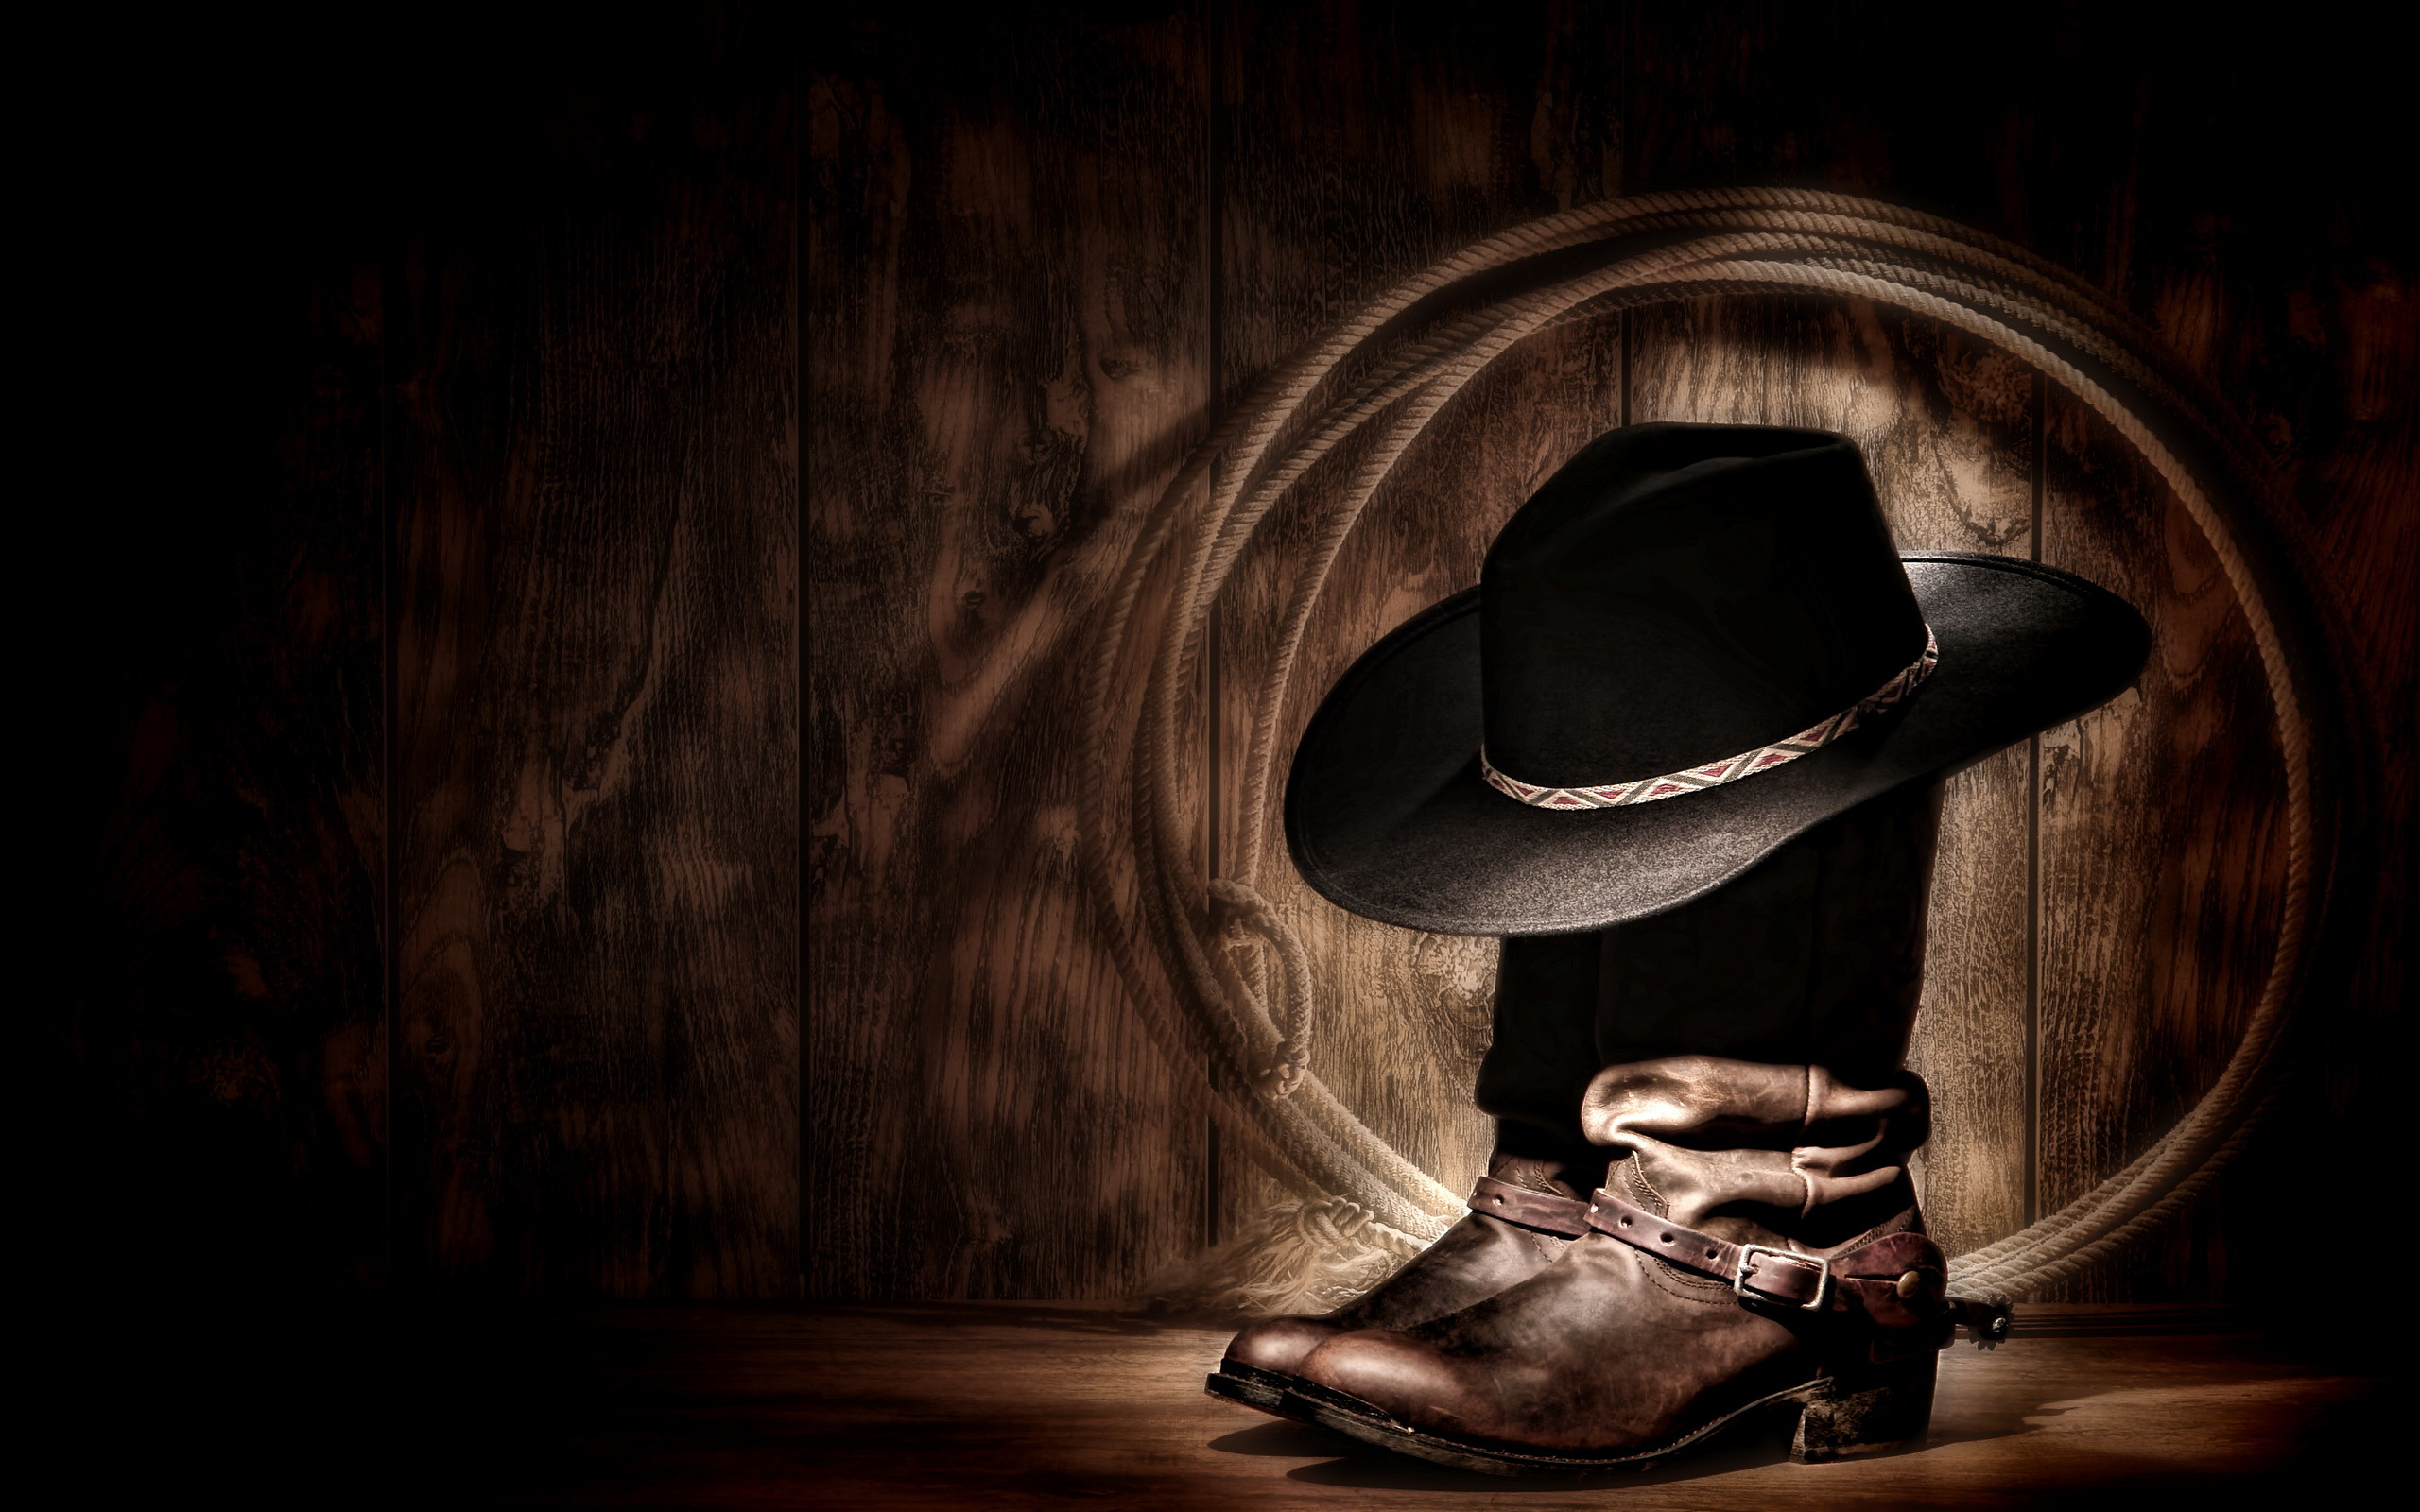 Res: 2560x1600, Photography - Cowboy Wallpaper